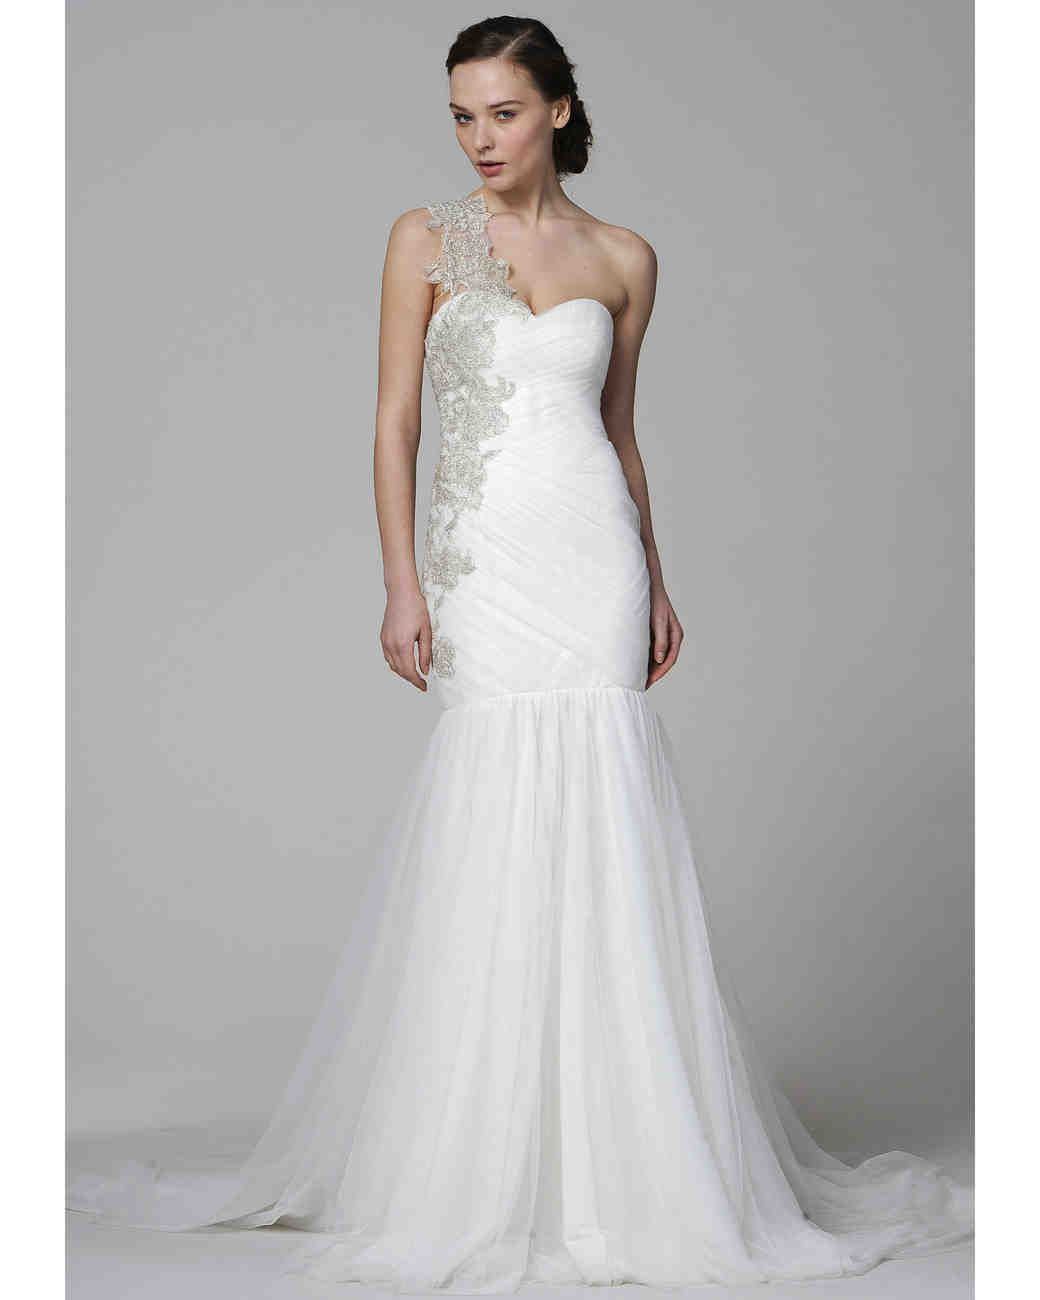 One Shoulder Wedding Dresses Spring 2013 Bridal Fashion Week